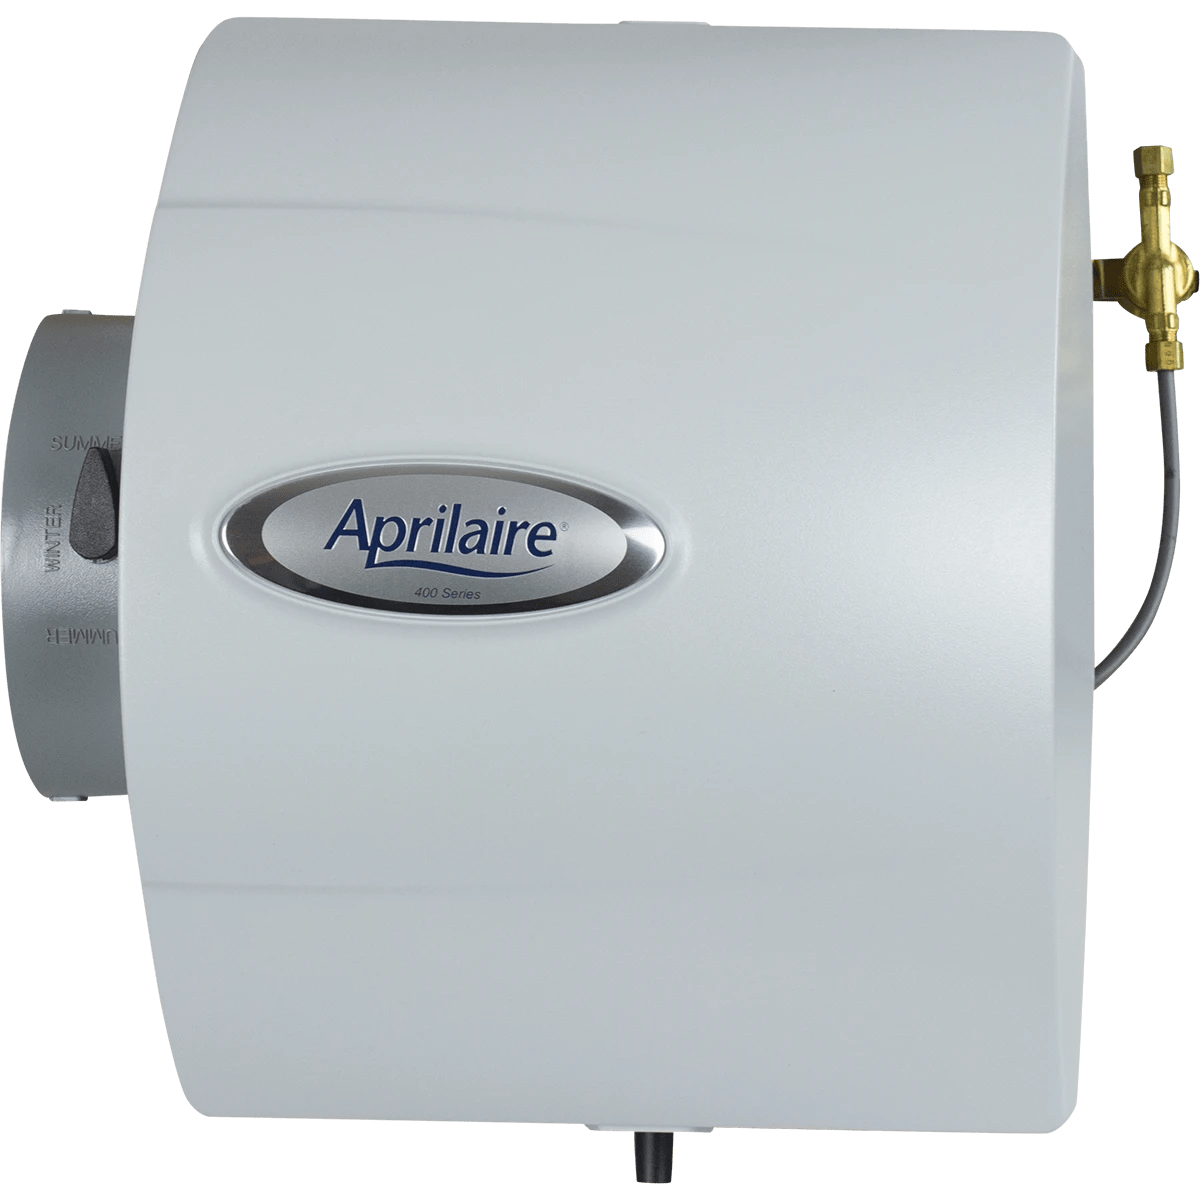 hight resolution of aprilaire model 400 drainless bypass humidifier front